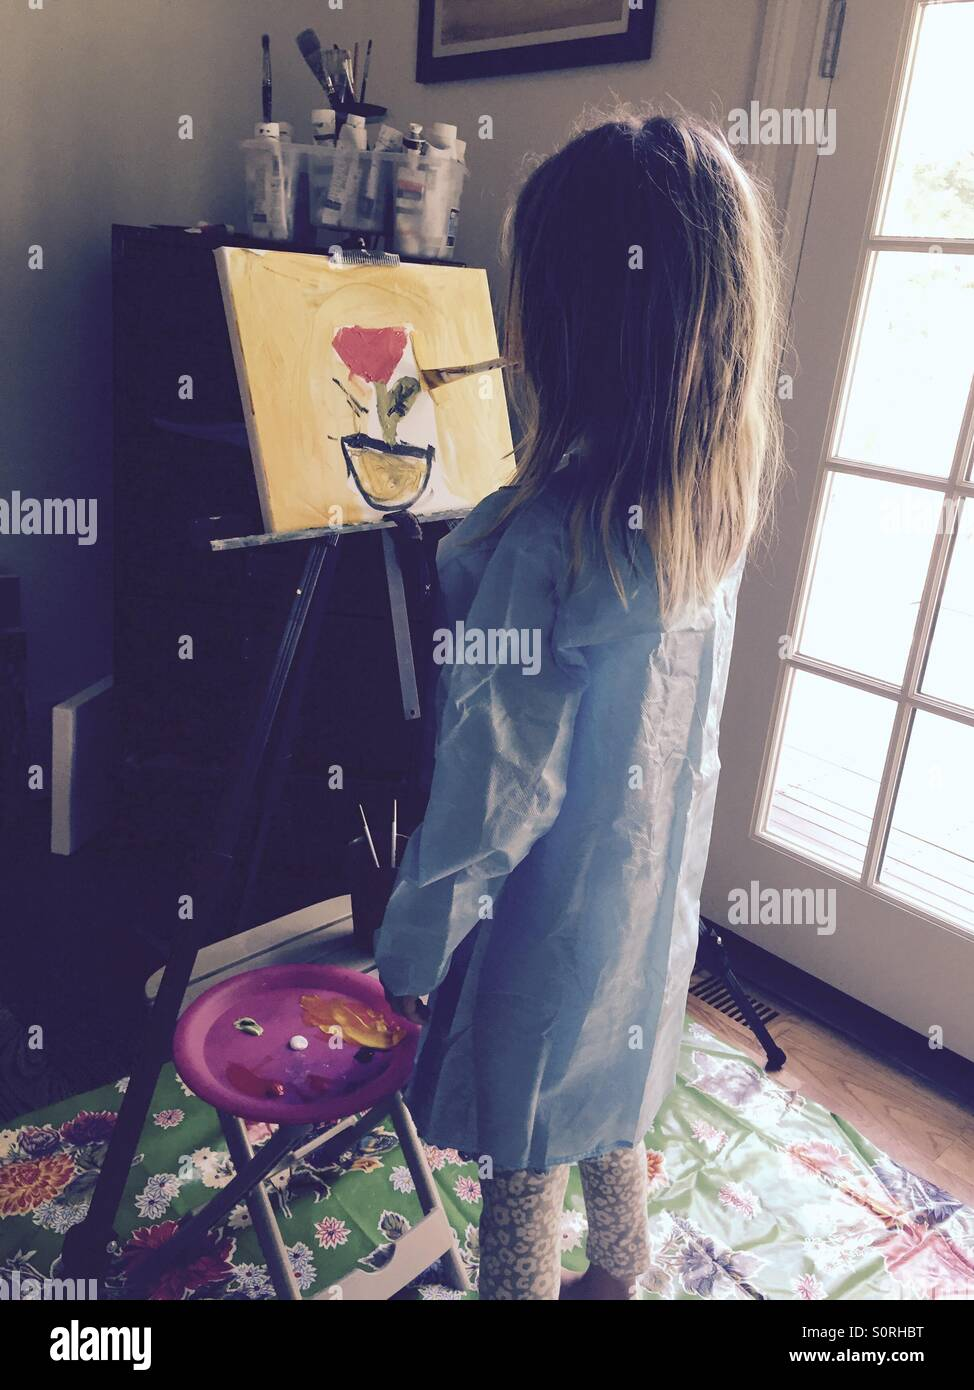 Girl painting a flower - Stock Image